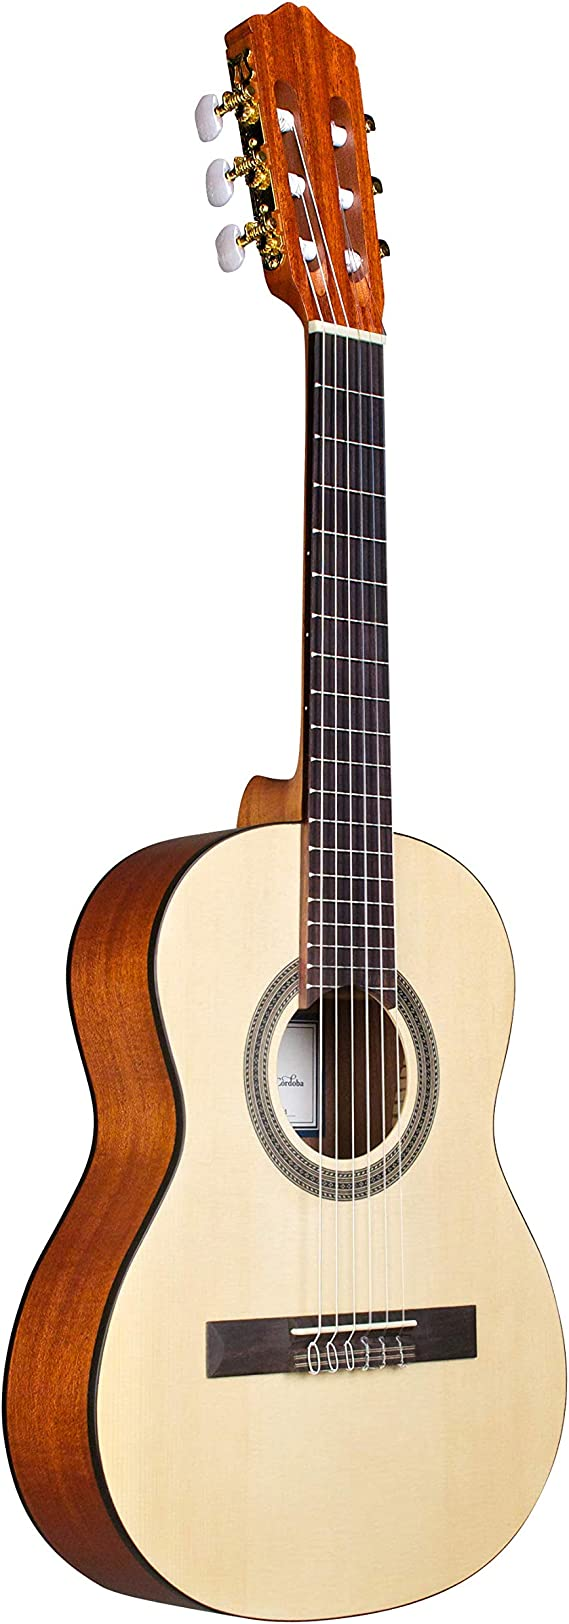 Cordoba Guitars 6 Cordoba C1M 1/4 Acoustic Nylon String Guitar